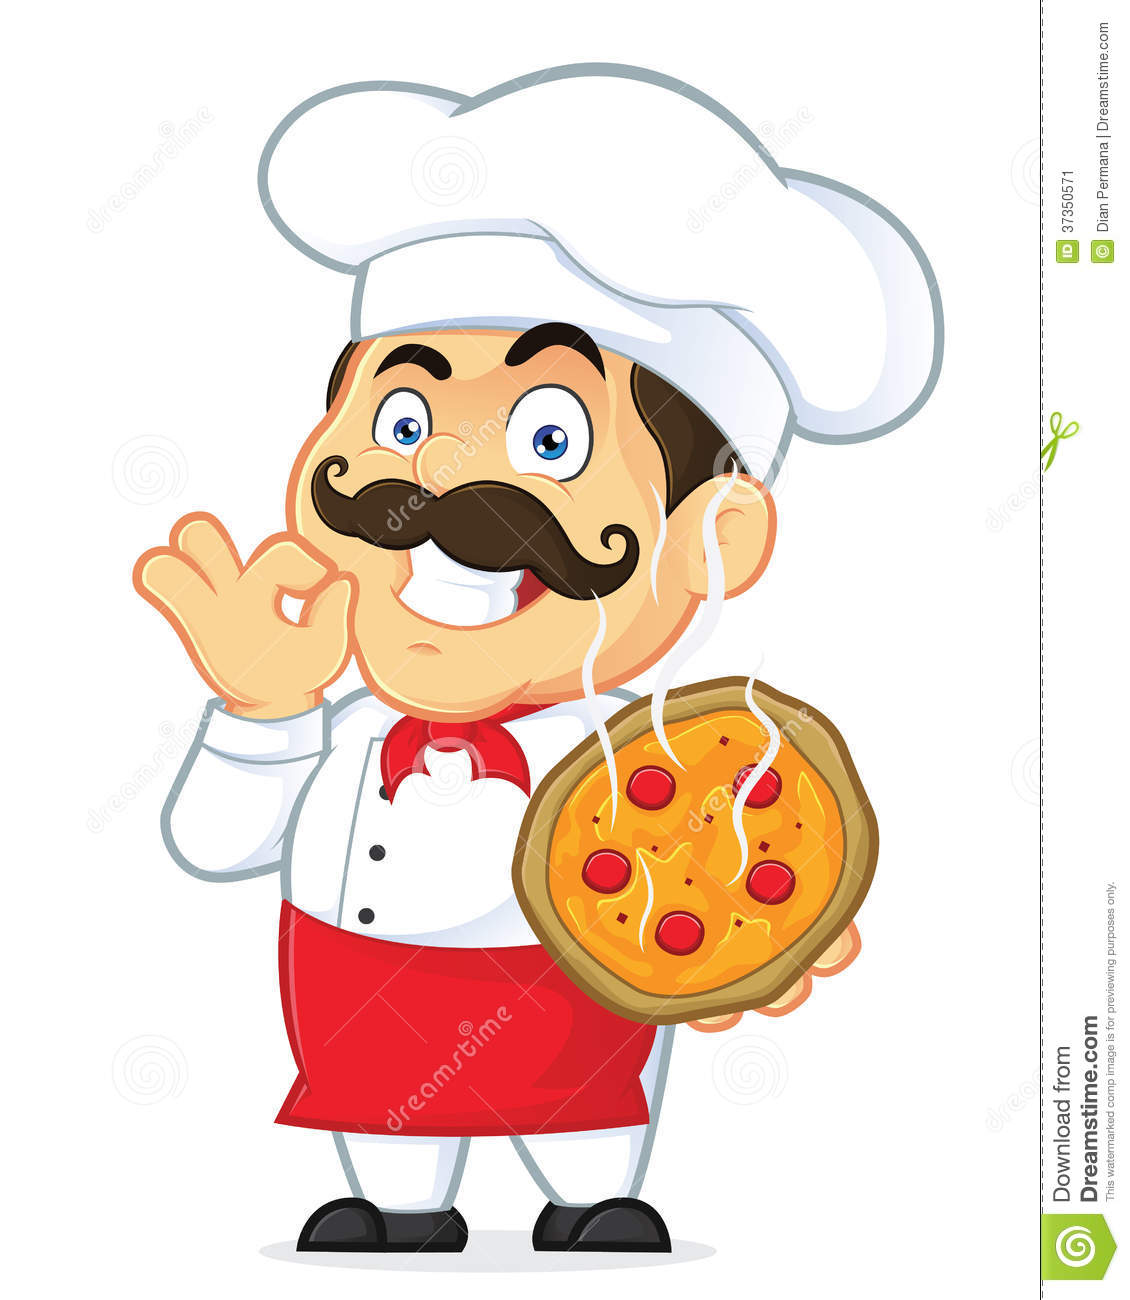 Animated clipart chef vector library stock Chef Cartoon Clipart - Clipart Kid vector library stock